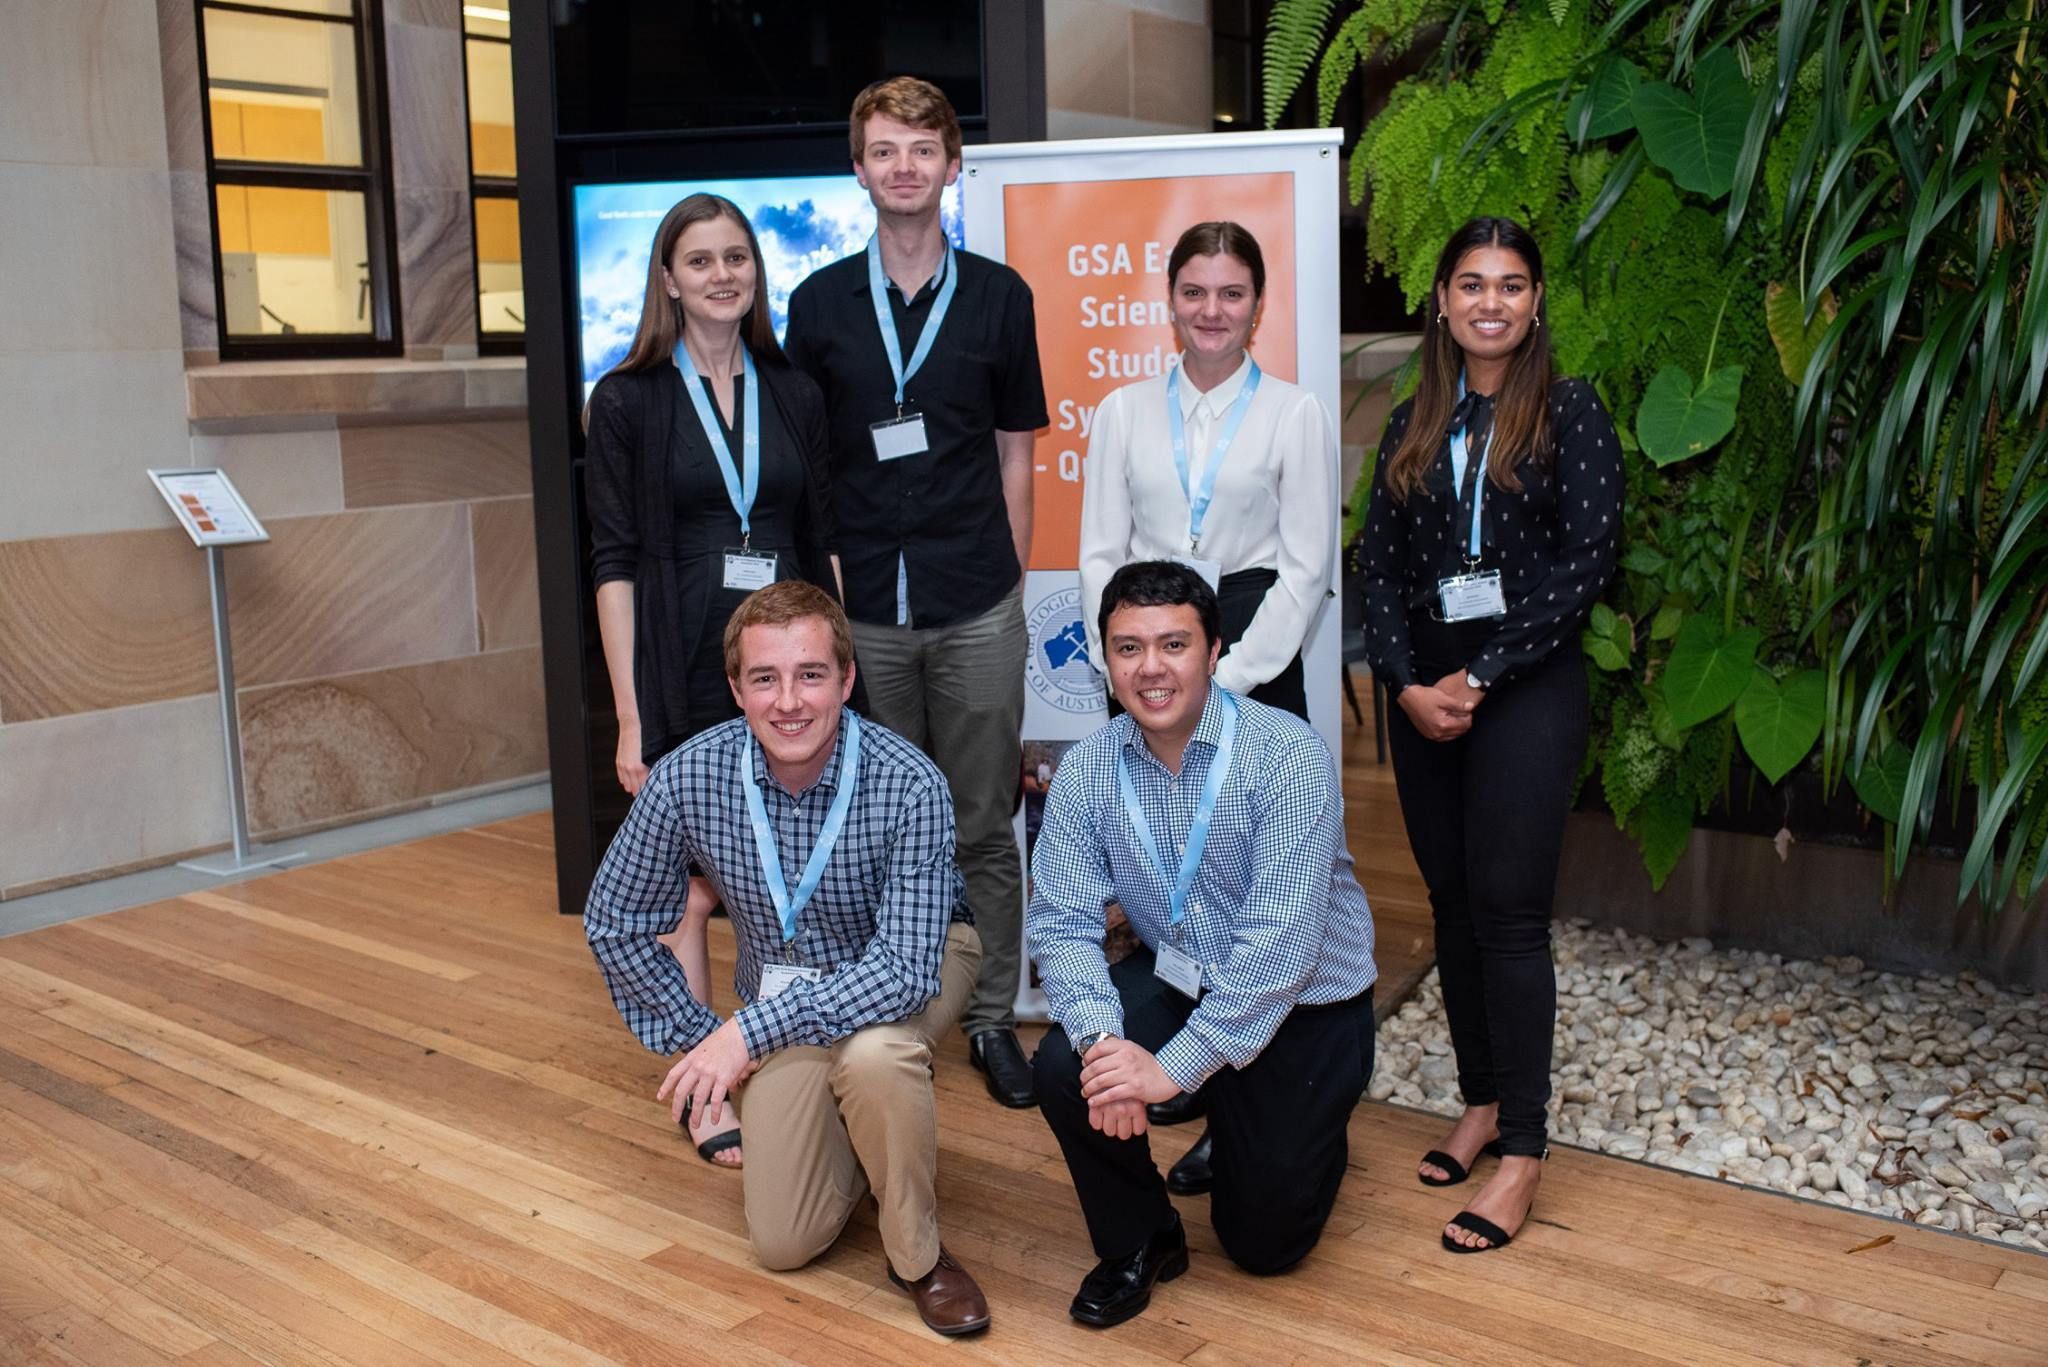 Rosyln Dalton (Chair), Clint Caldicott (Secretary),  Alex Wheeler (Treasurer), Owen Welsh (Sponsorship Officer), Adi Sondkar (Advertising), Honor Wilson (Website Adds and Comms)